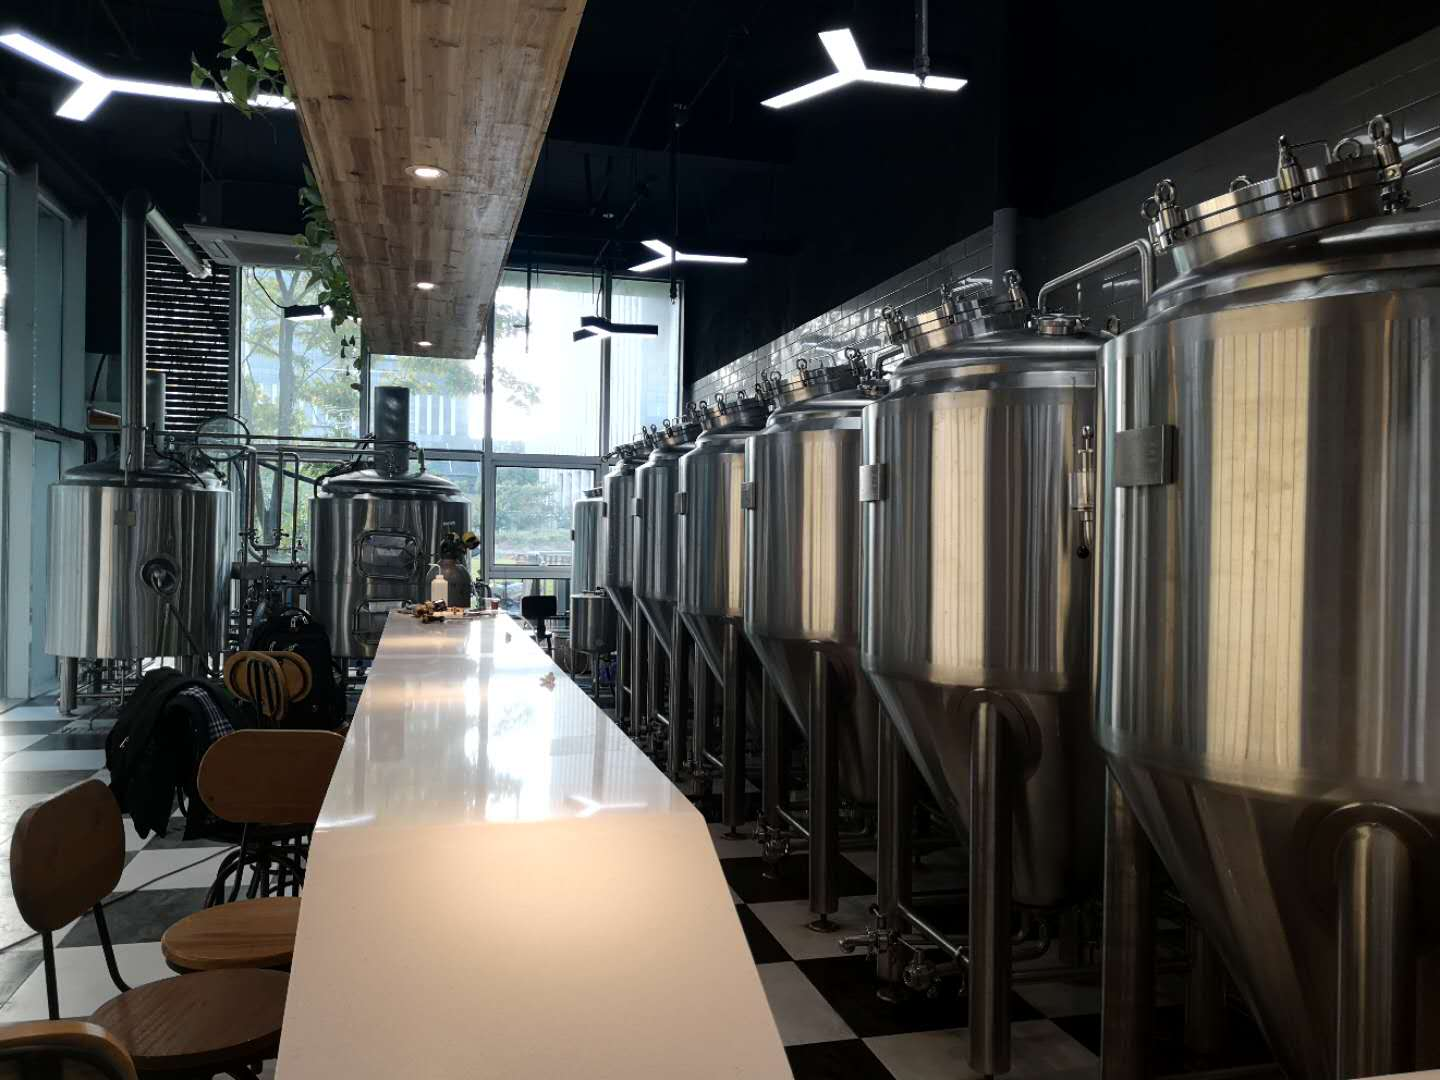 WEMAC 500L beer brewing system factory using in pub & restaurant